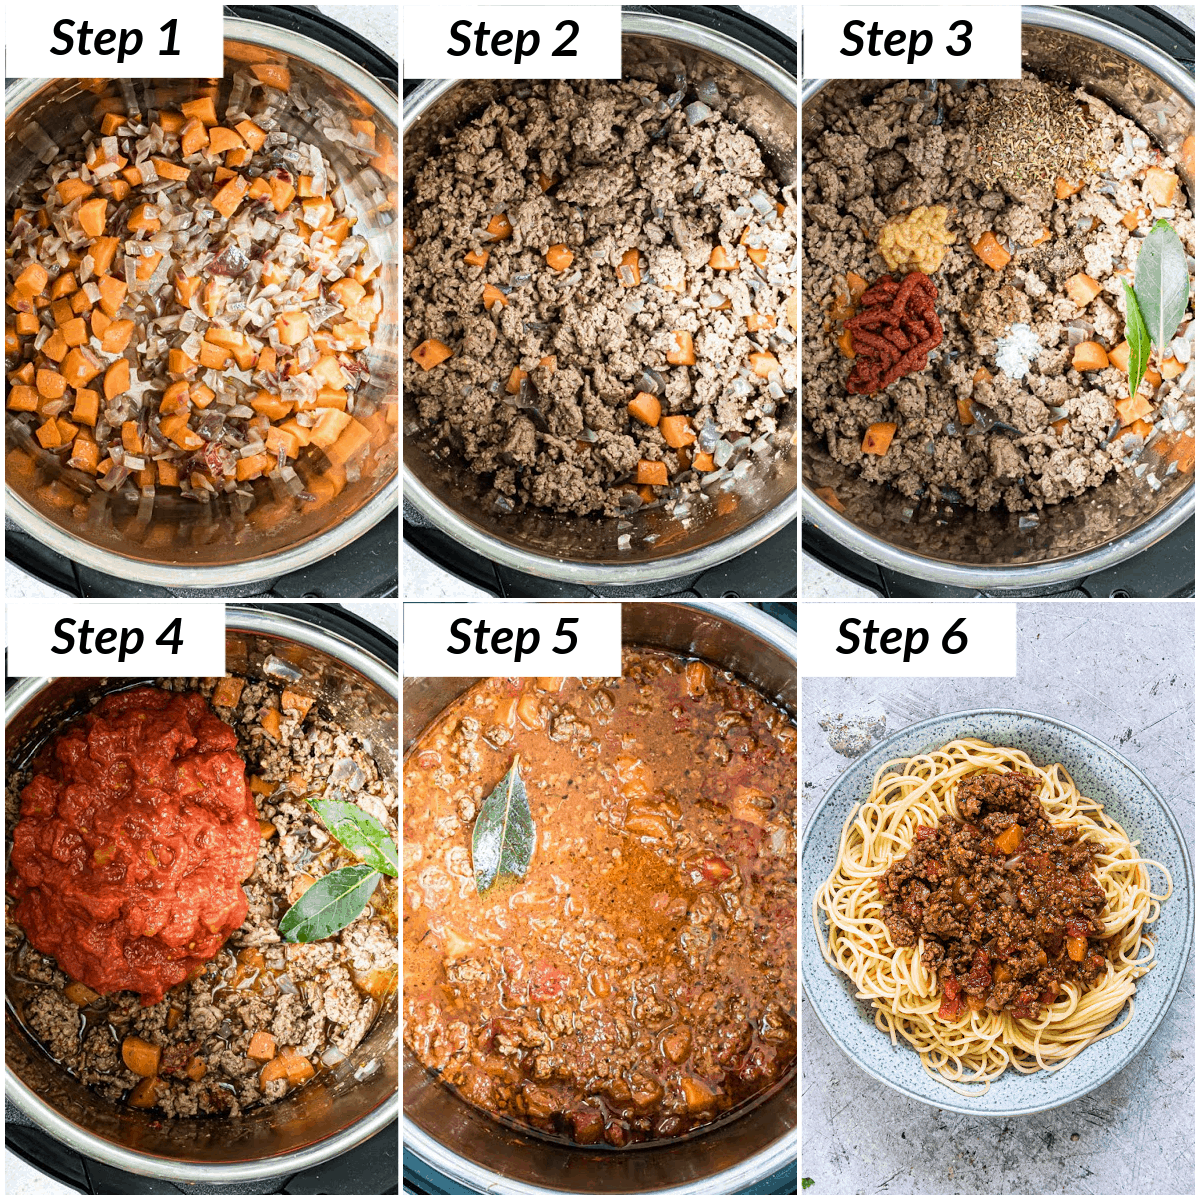 image collage showing the steps for making instant pot bolognese sauce